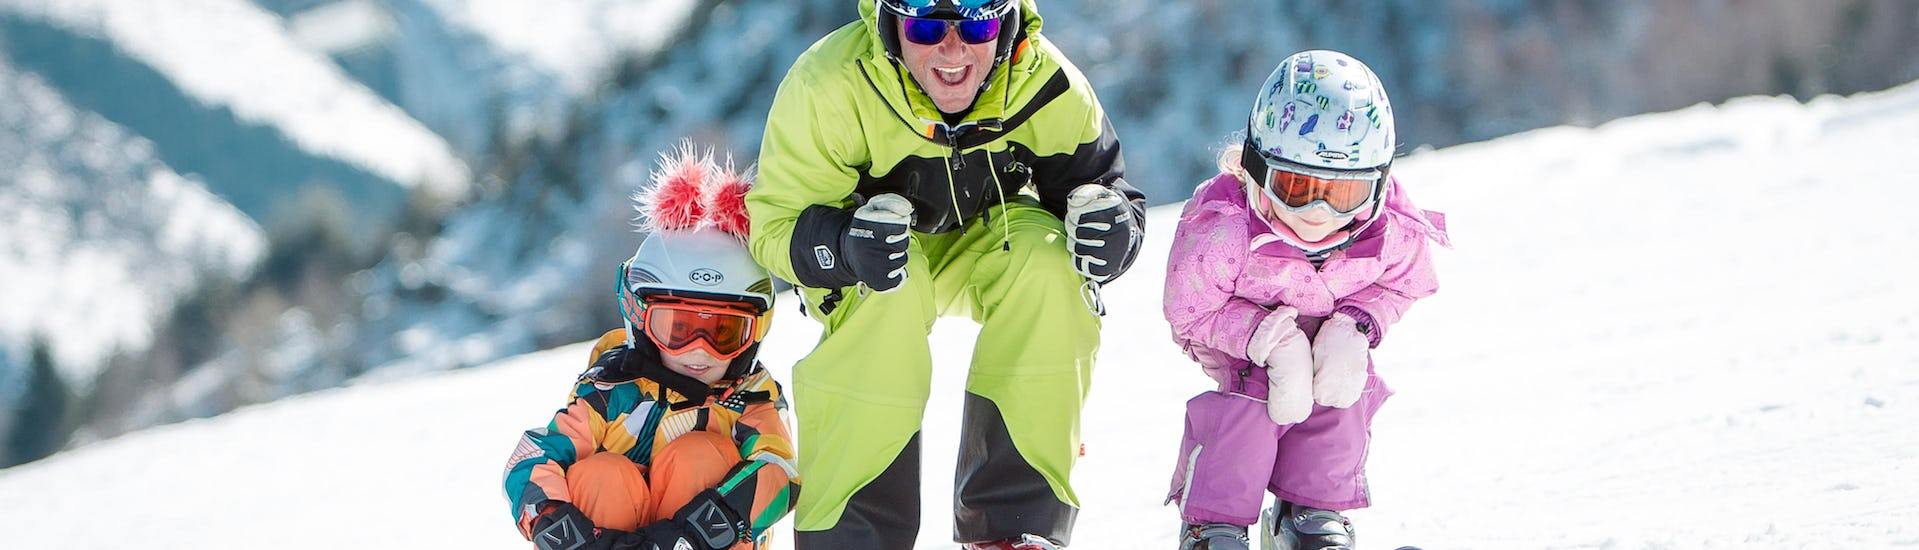 Ski Instructor Private for Kids - Afternoon